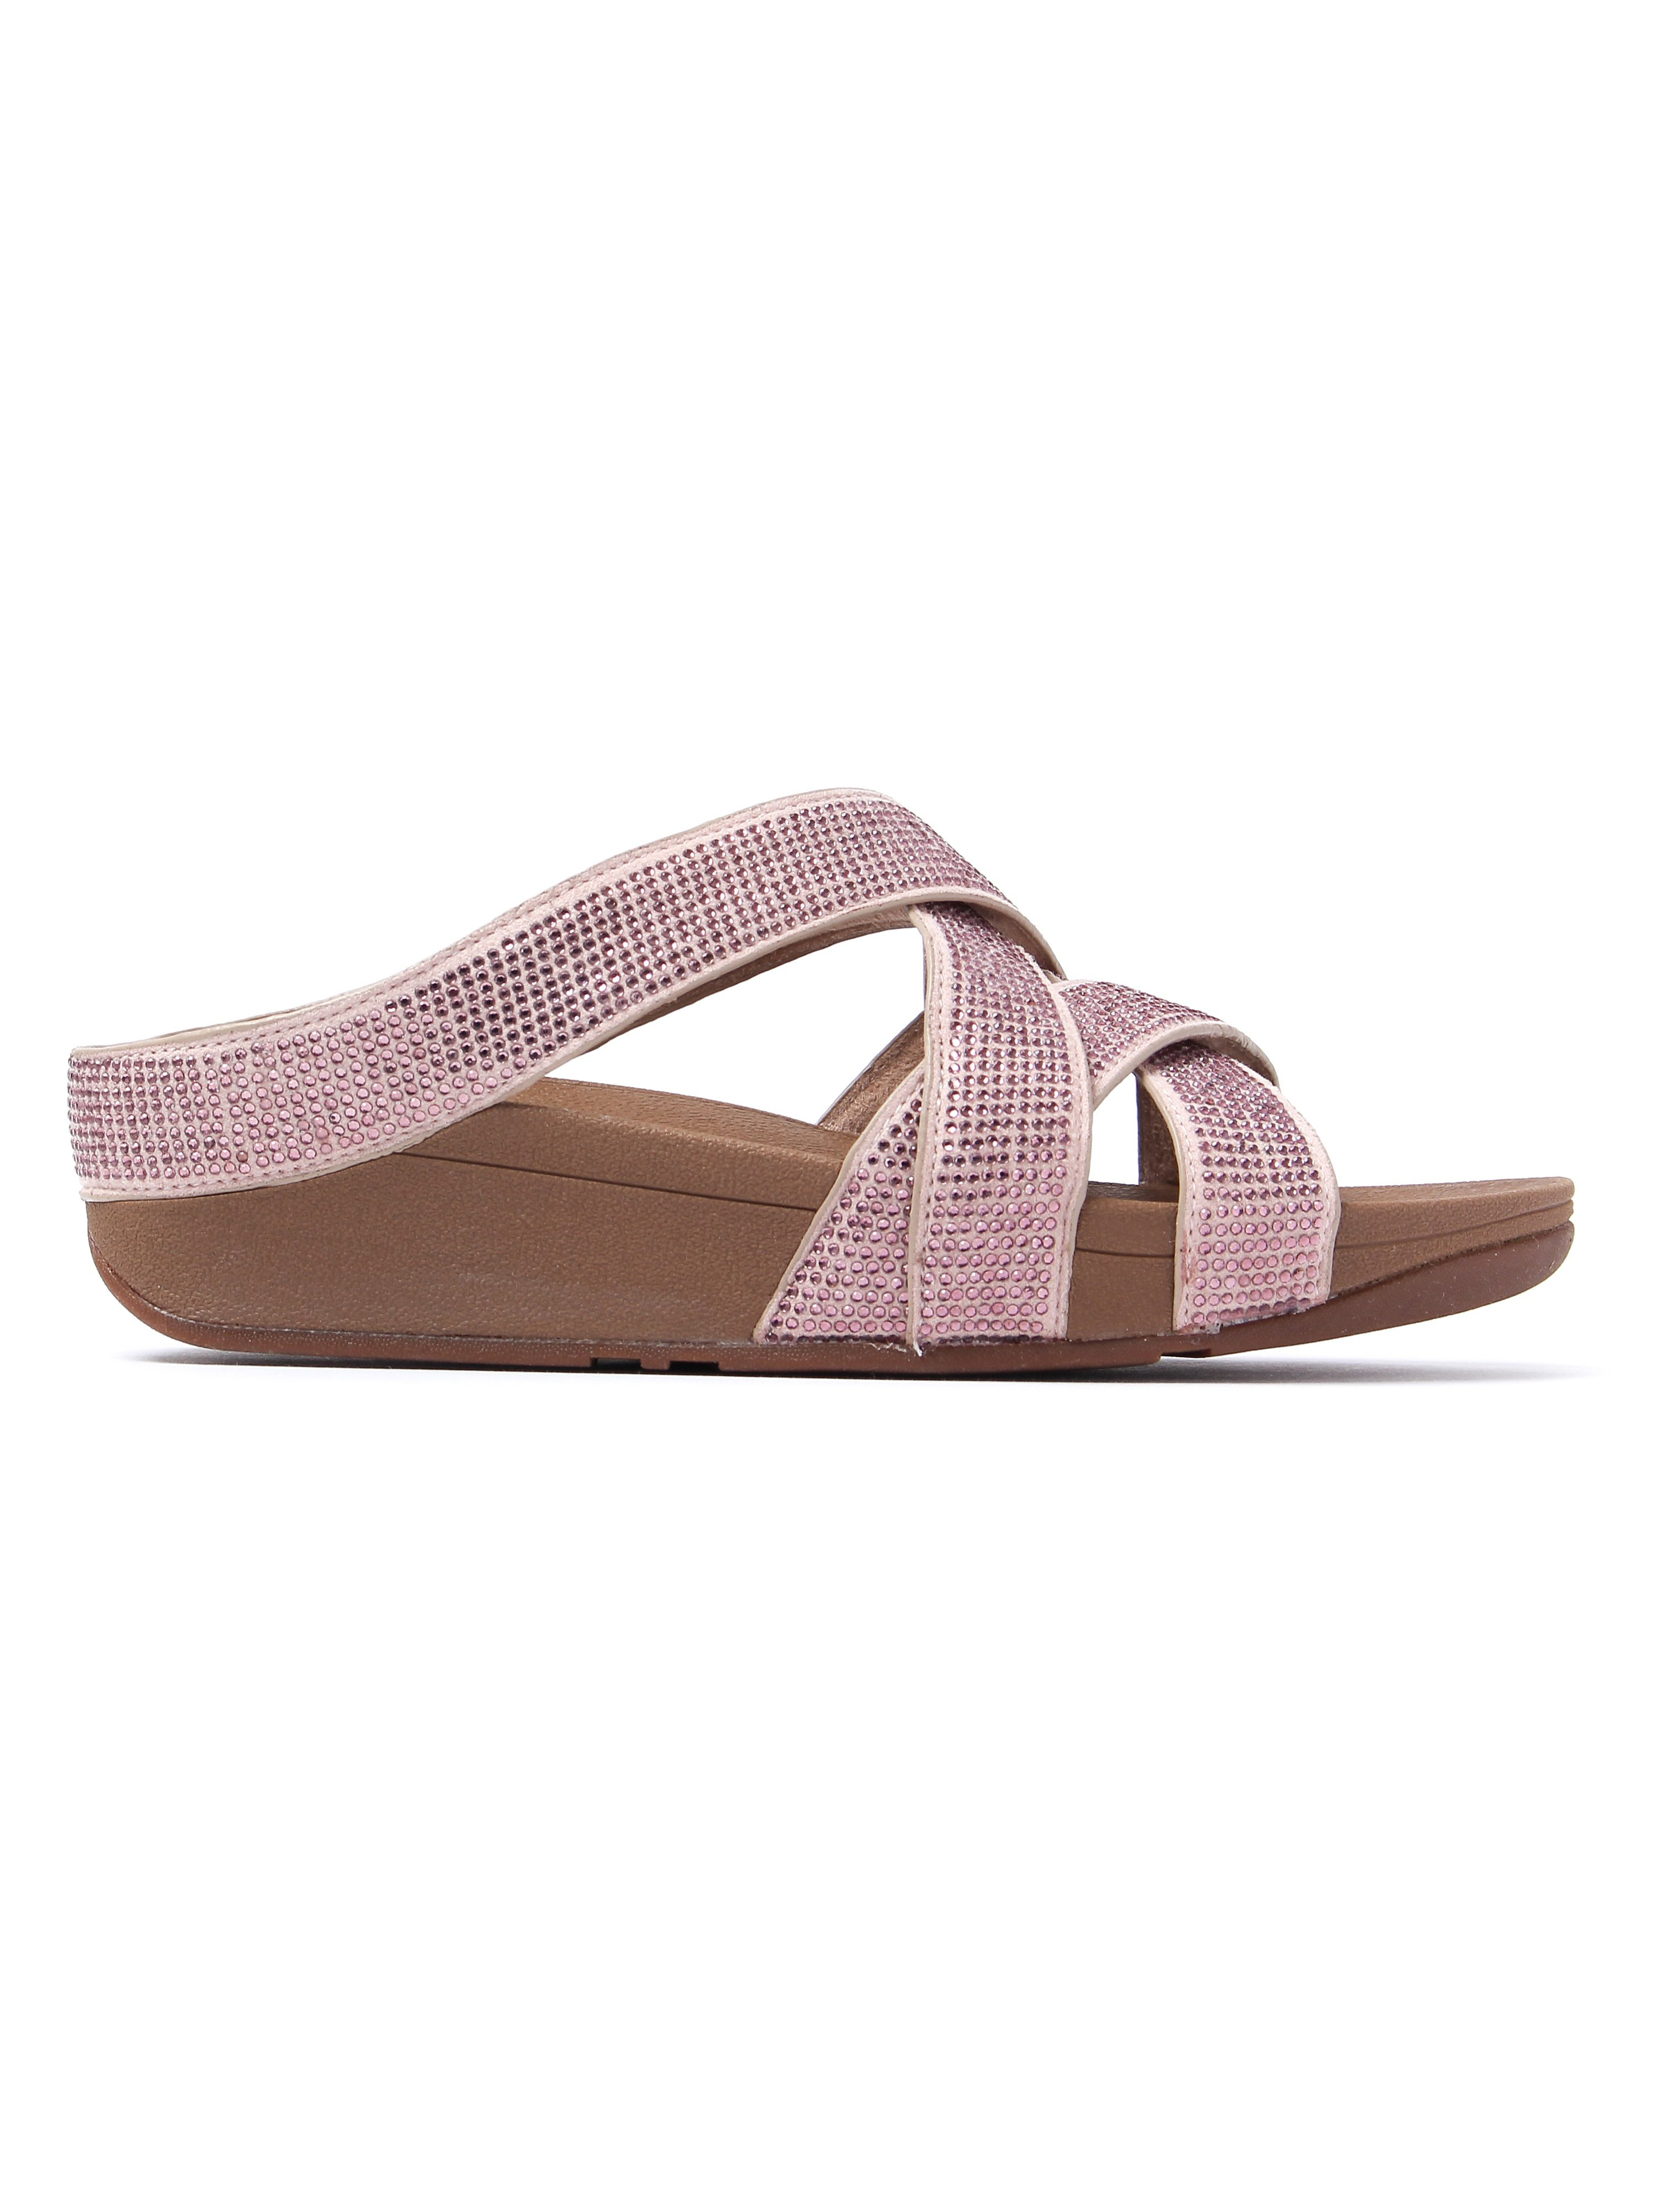 FitFlop Women's Slinky Rokkit Slide Sandals - Nude